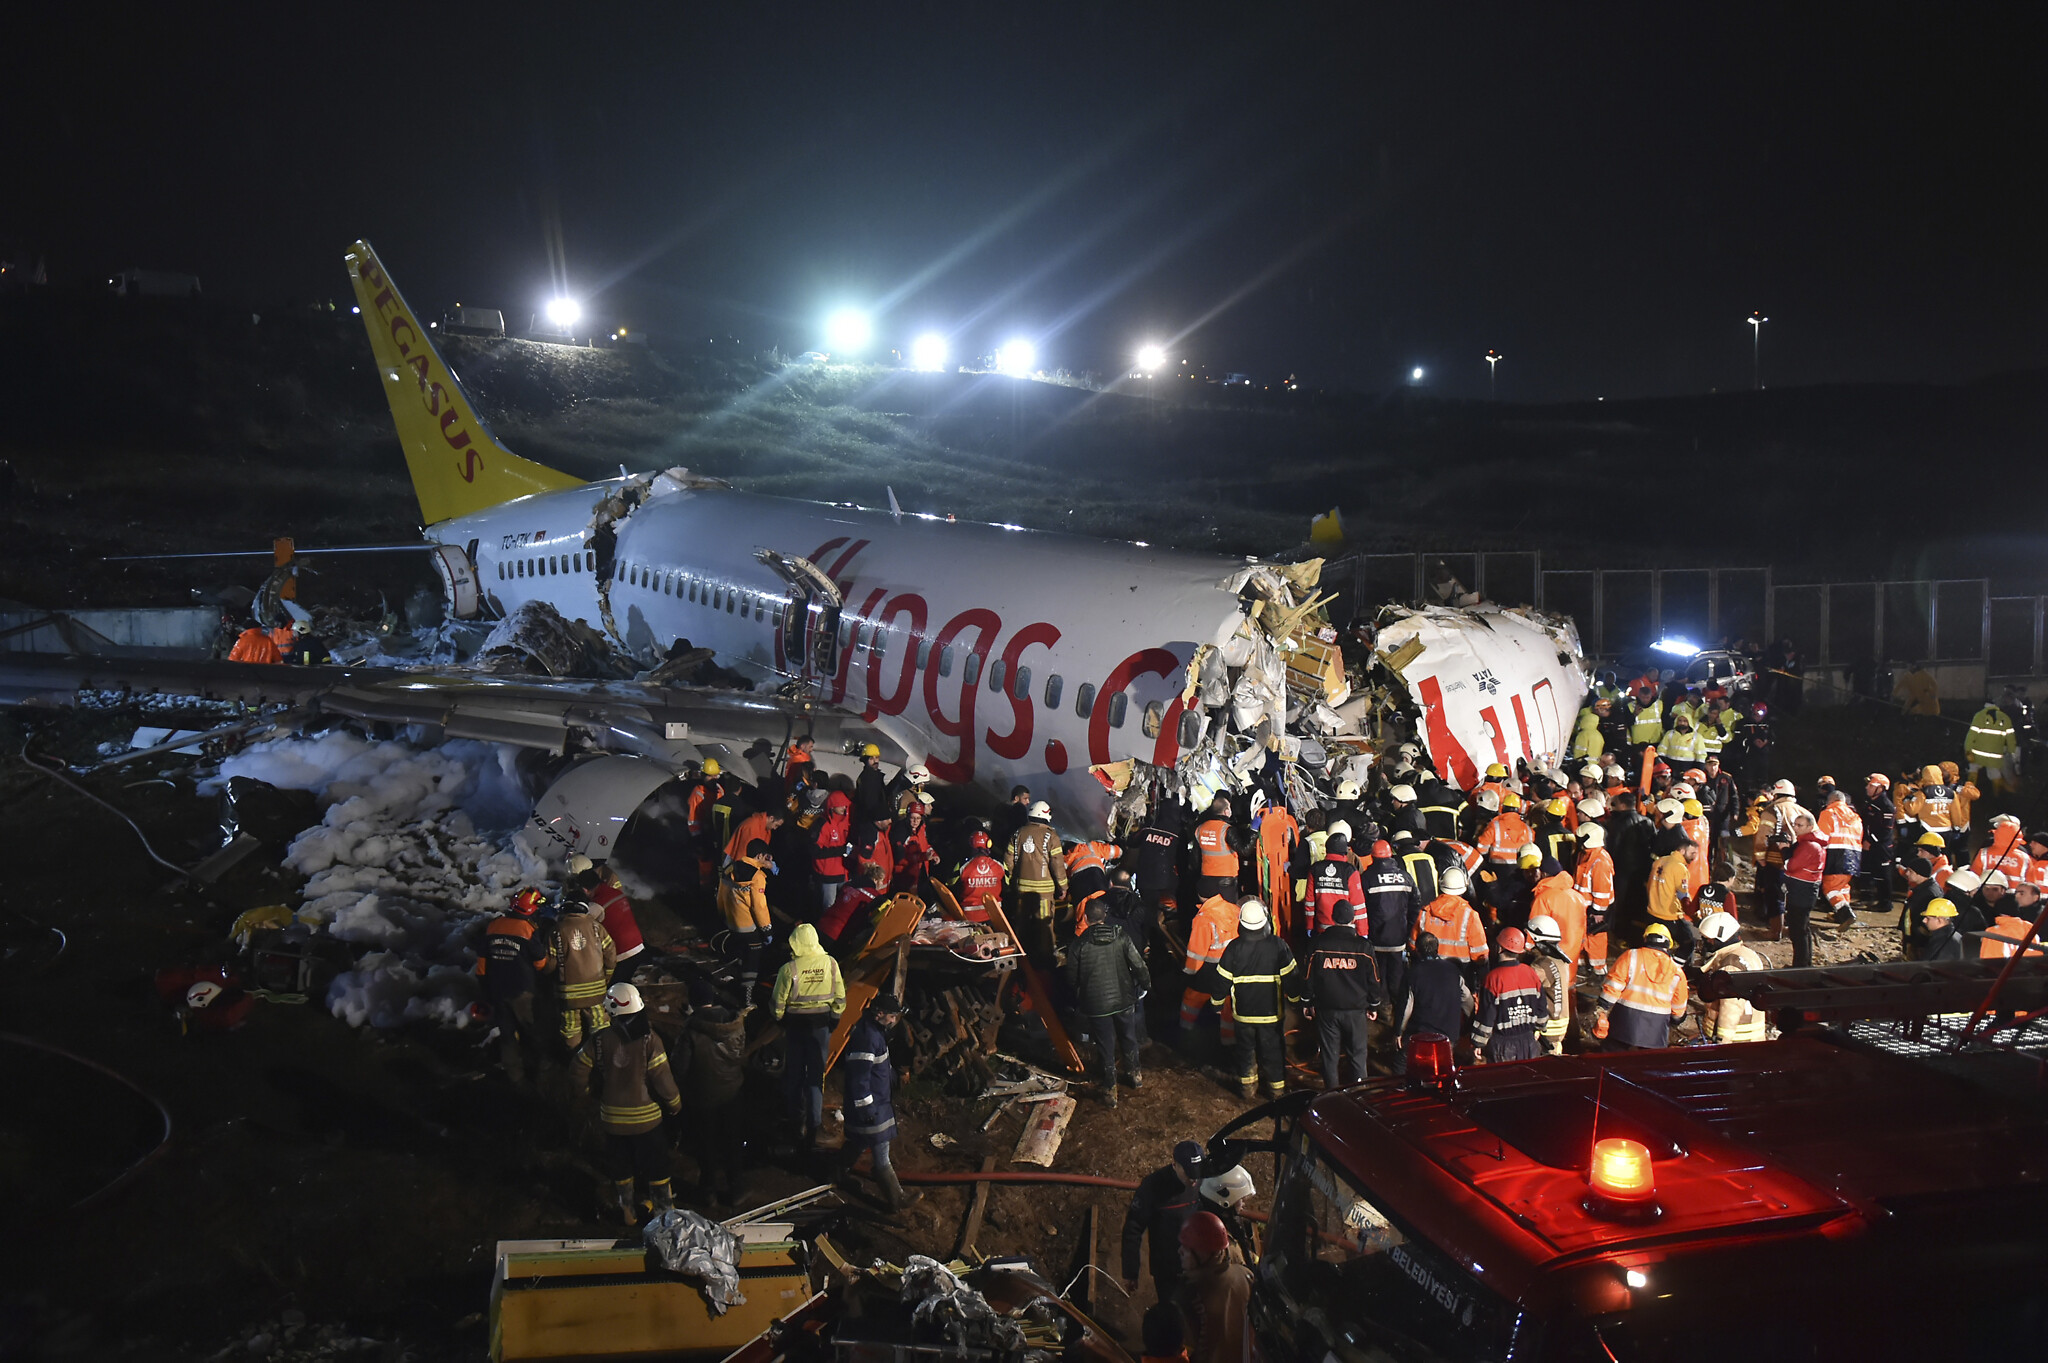 Airliner skids, breaks into three parts in Istanbul; 3 dead, 179 injured |  The Times of Israel